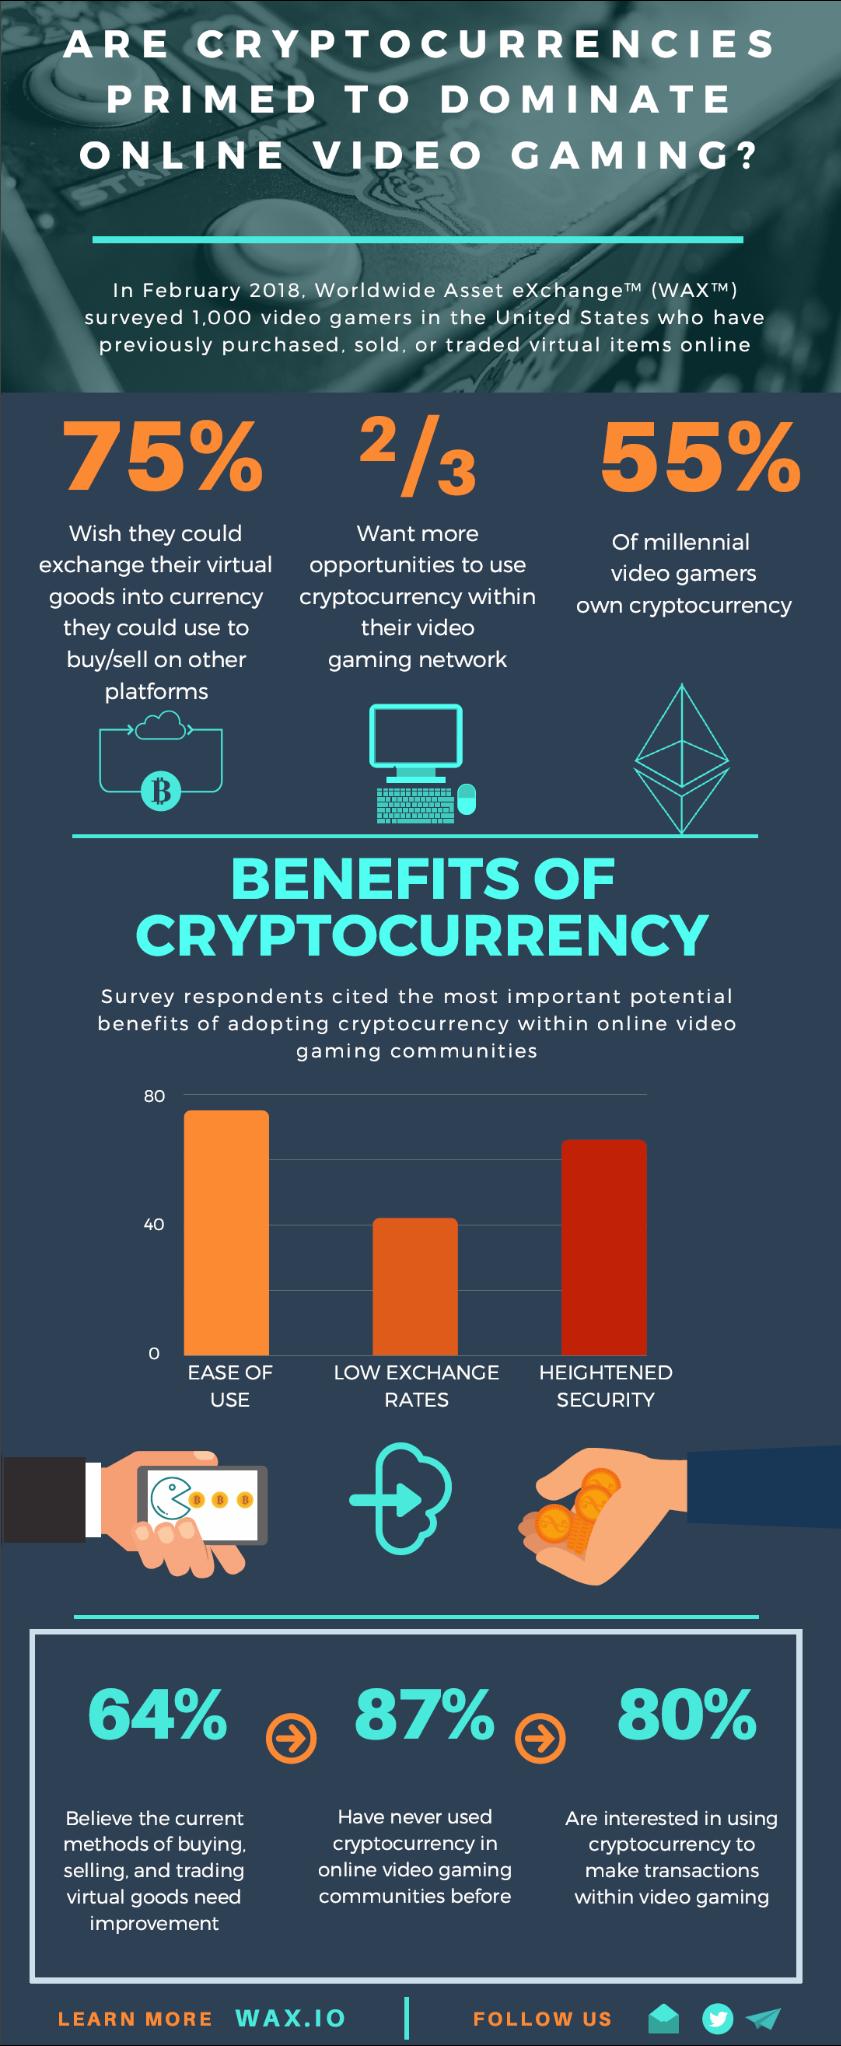 Cryptocurrencies are on track to dominate online video gaming and results from a recent study showing online video gamers pent up demand to use cryptocurrencies to enhance their video gaming experience ccuart Gallery